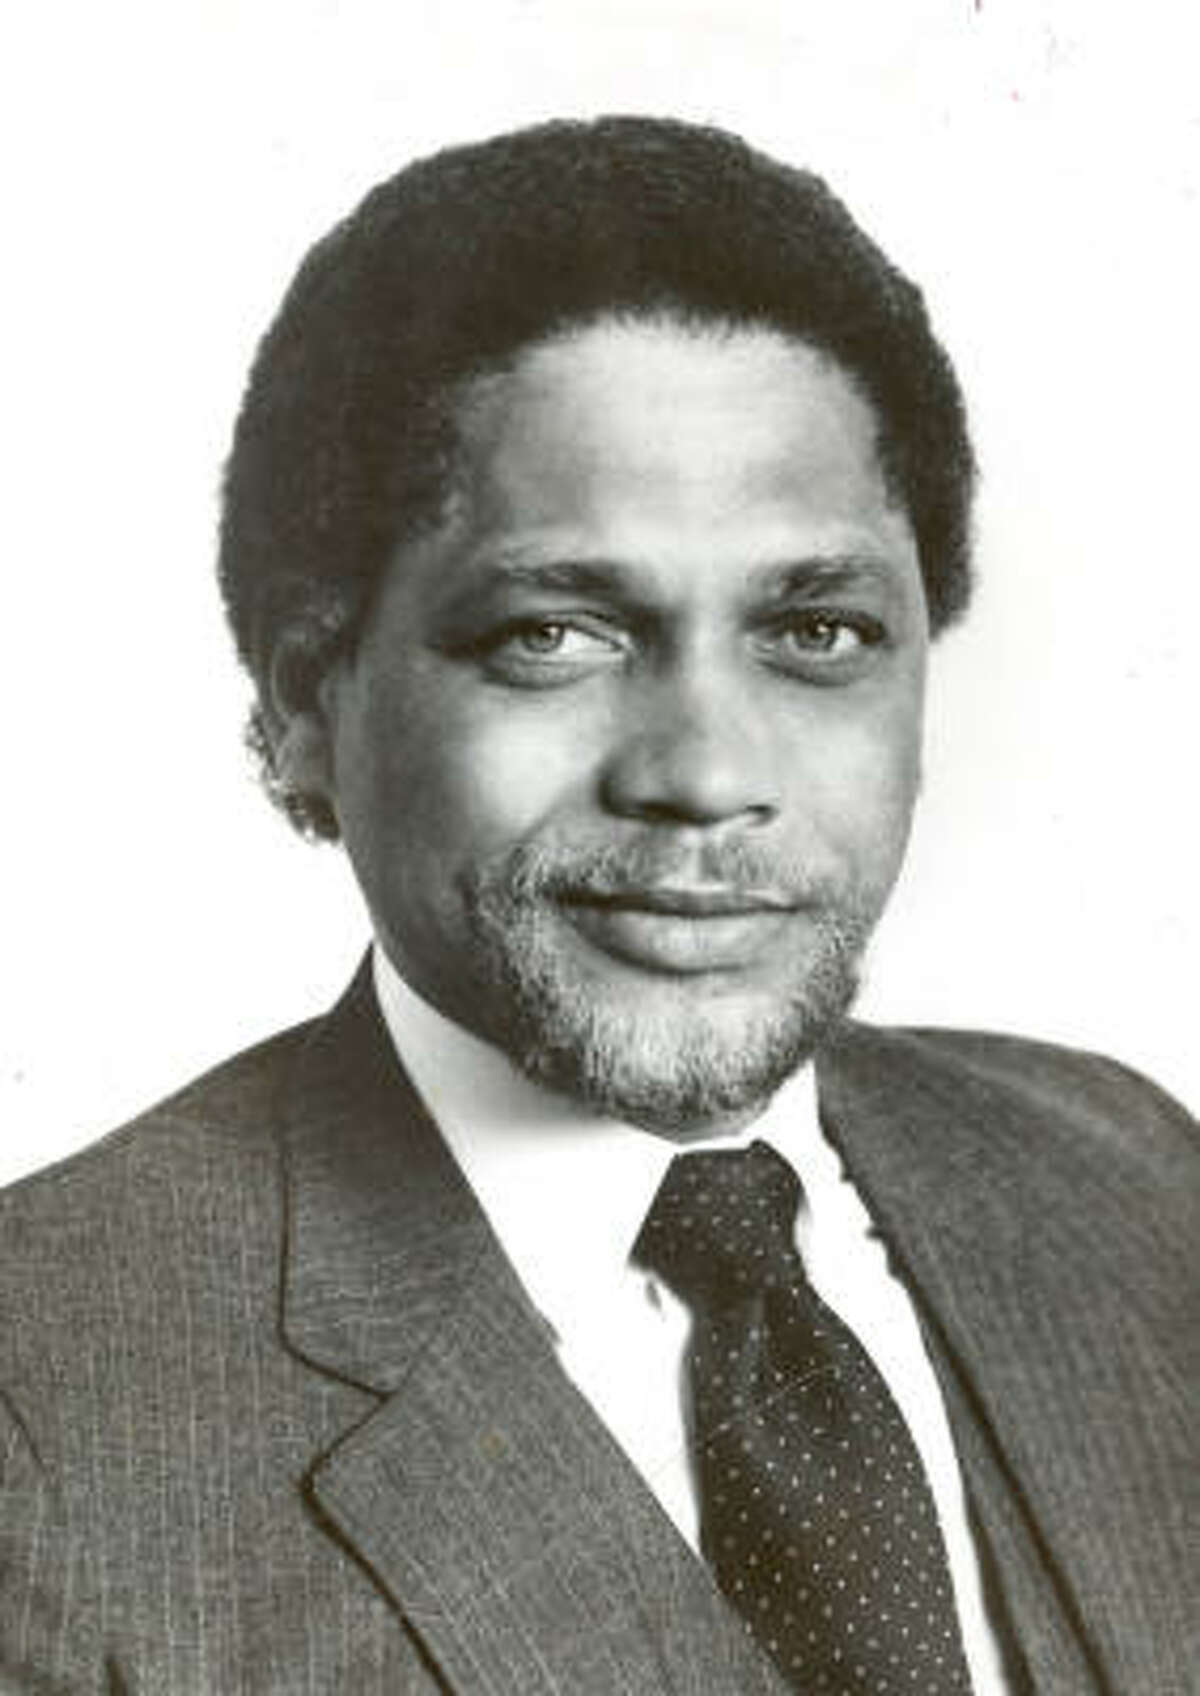 Houston anti-poverty activist and representative from the 18th District of Texas, Mickey Leland, pictured in the early '80s, was killed in a plane crash Aug. 7, 1989. A TSU graduate, Leland died in Gambela, Ethiopia, during a mission trip. A federal building in downtown Houston is named for him, as is the international terminal at Intercontinental Airport.